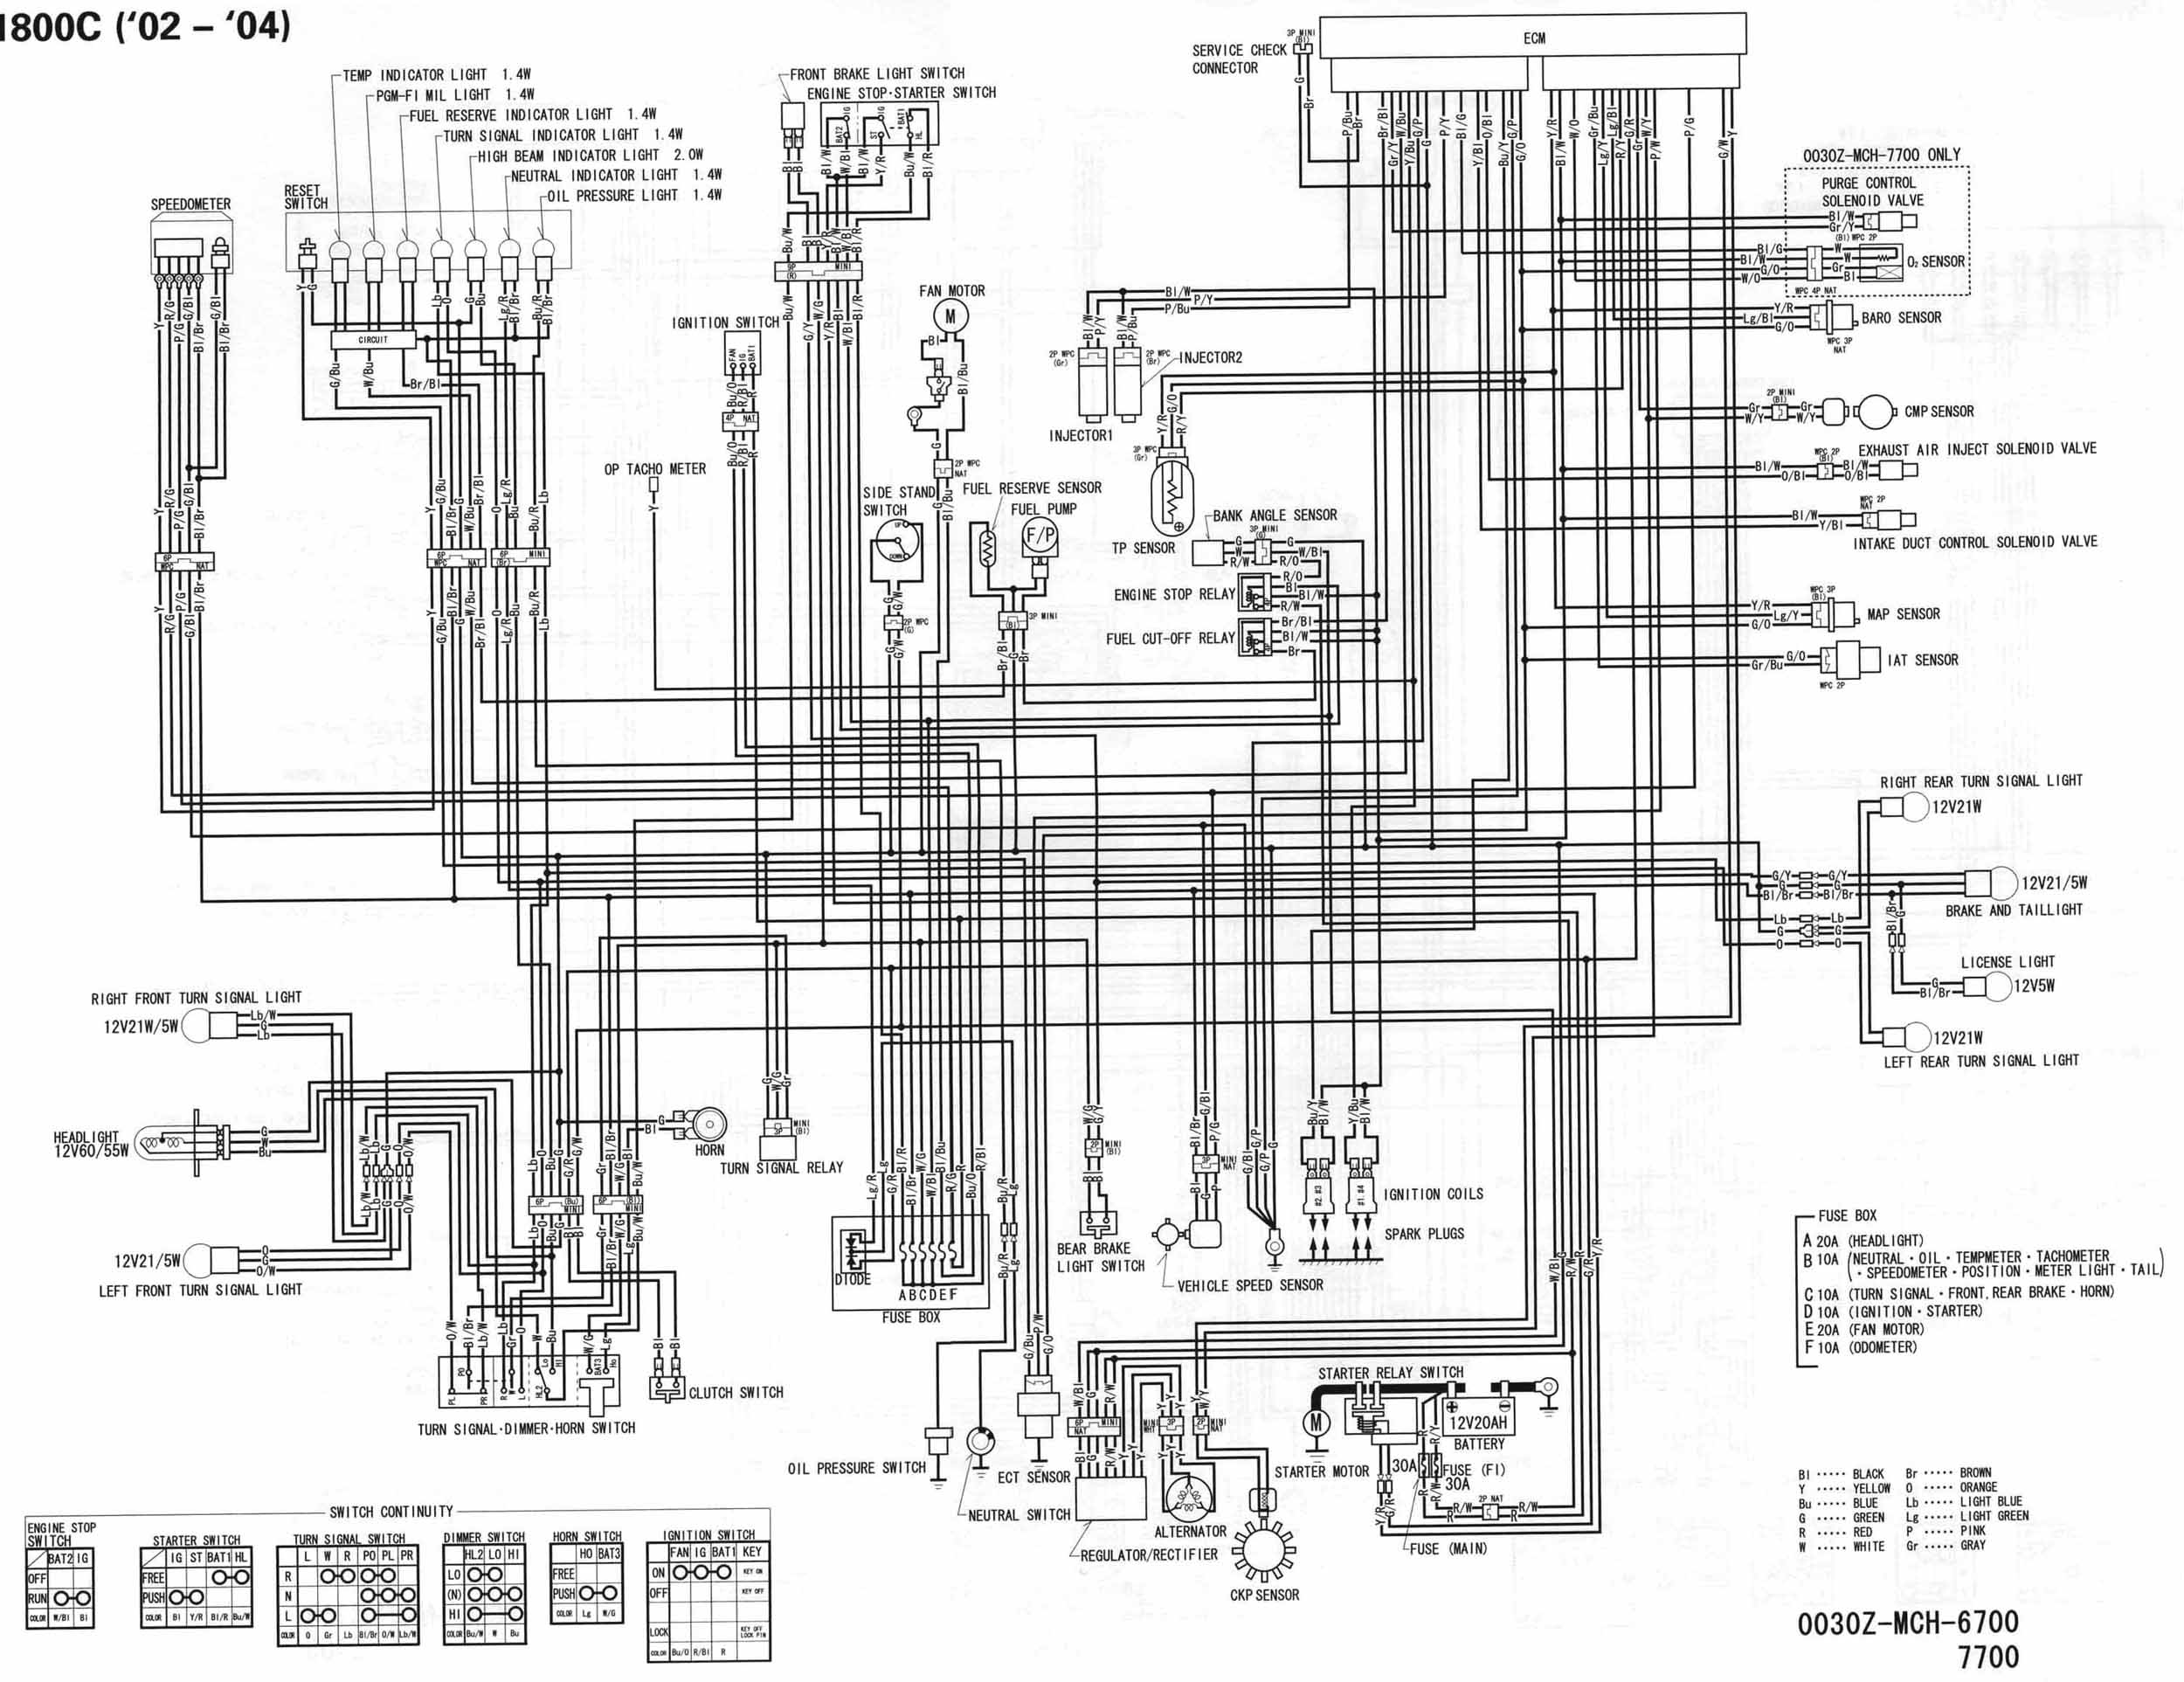 1999 Honda Aero Wiring Diagram Archive Of Automotive Shadow 1100 Books U2022 Rh Mattersoflifecoaching Co